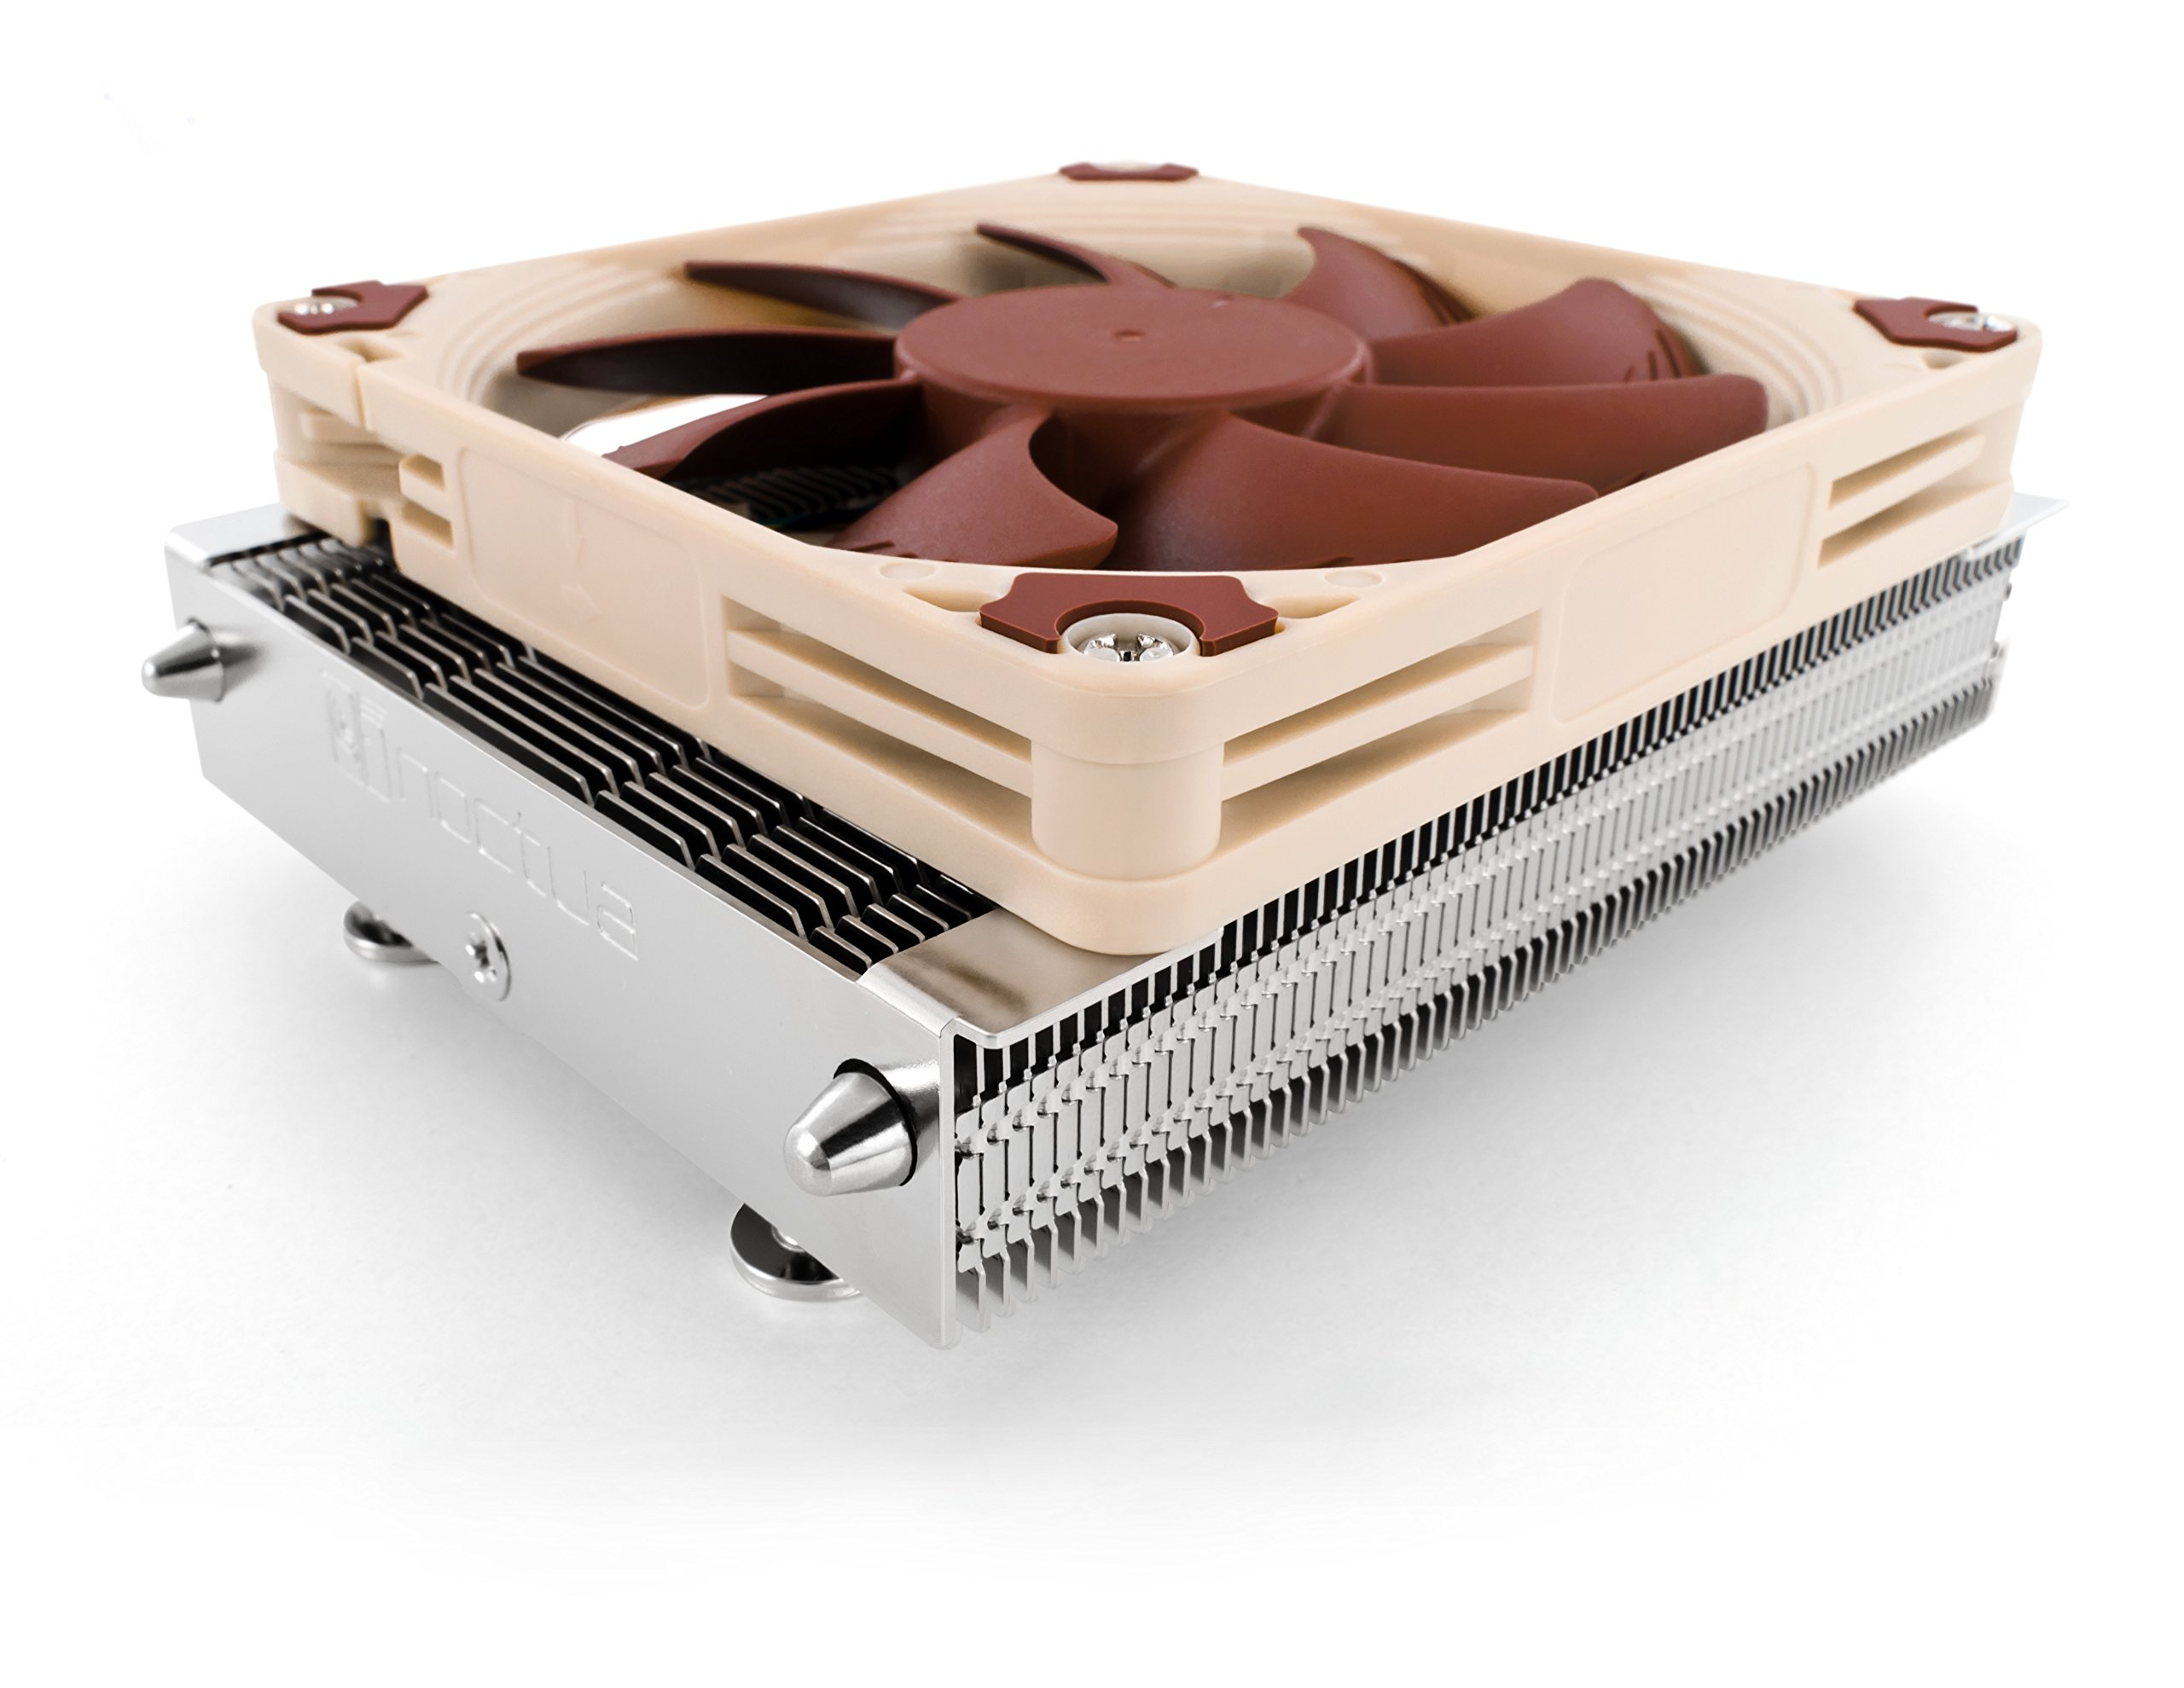 Noctua NH-L9a-AM4 low-profile quiet cooler for AMD Ryzen CPUs and APUs by noctua (Image #1)